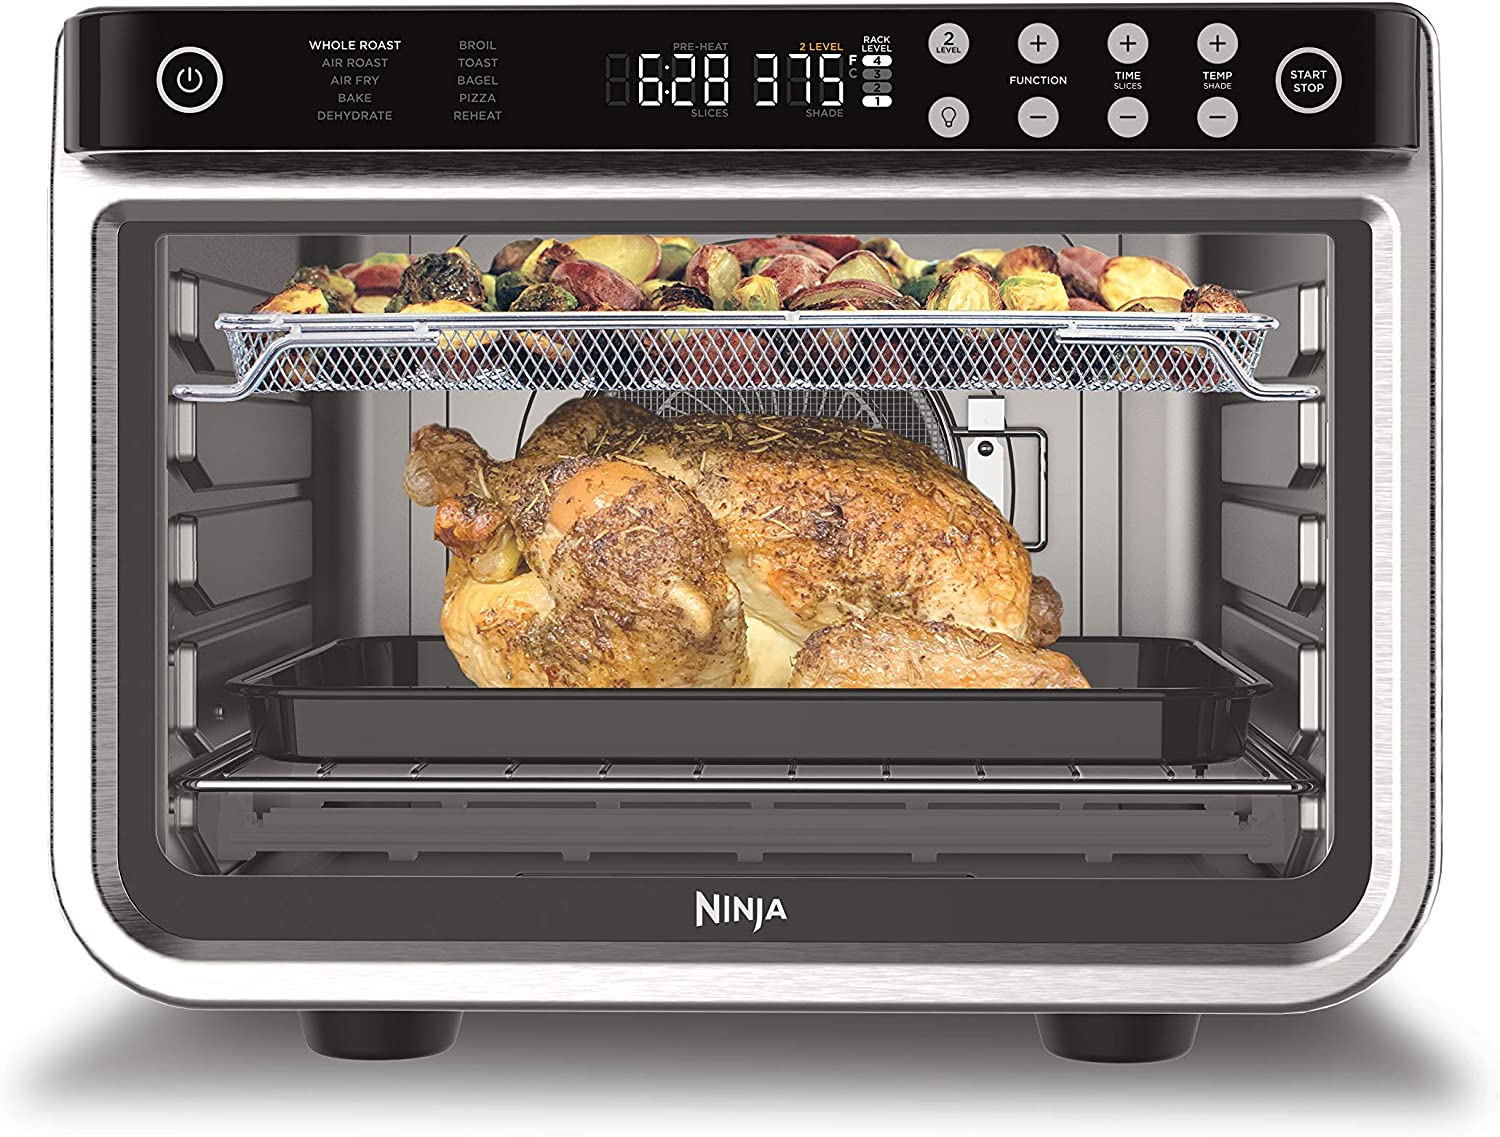 Ninja DT201 Foodi 10-in-1 XL Pro Air Fry Digital Countertop Convection Toaster Oven with Dehydrate and Reheat, 1800 Watts, Stainless Steel Finish